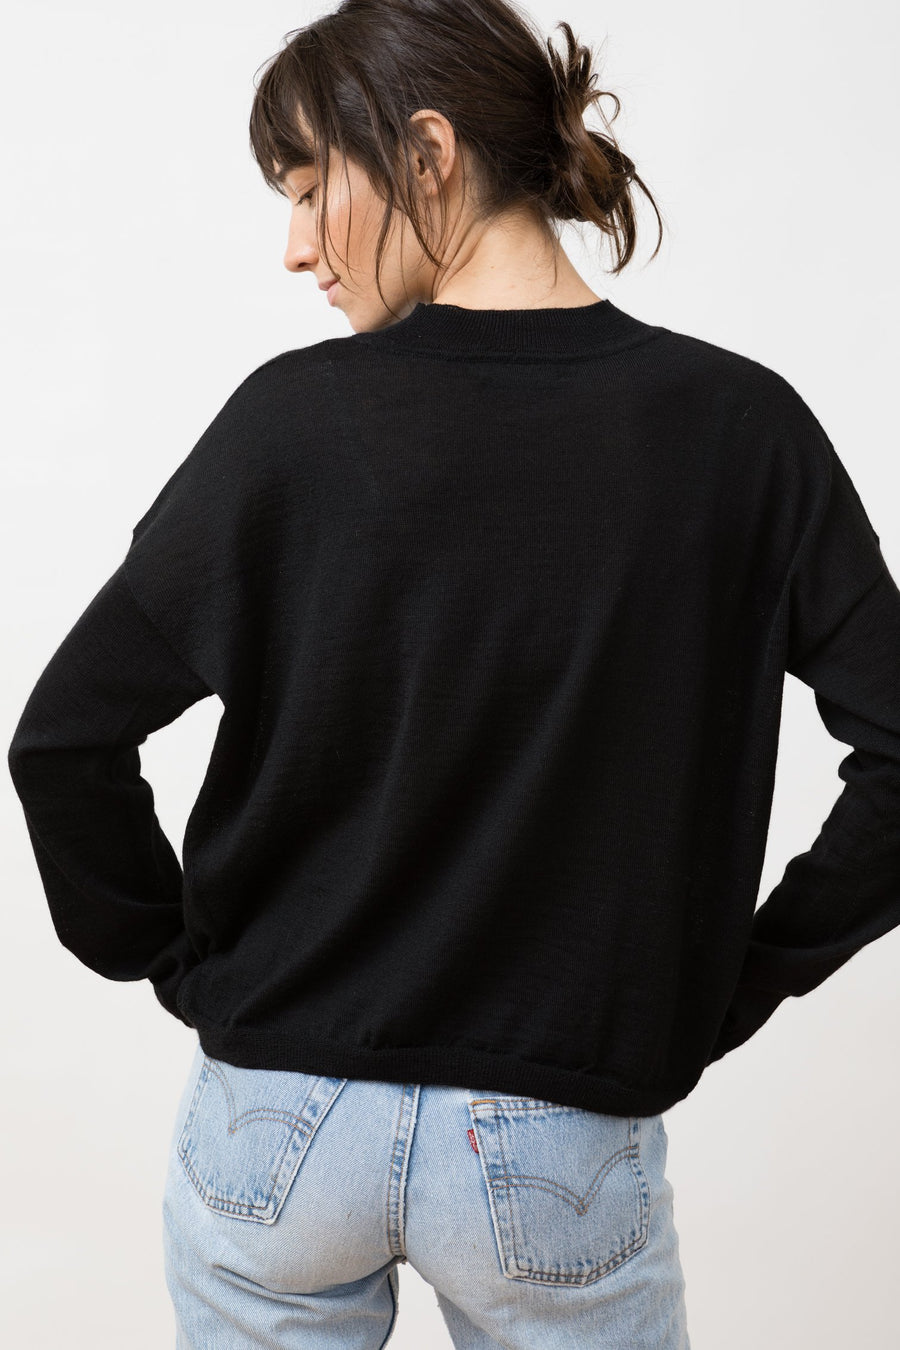 Knit Sweater Arvo Black